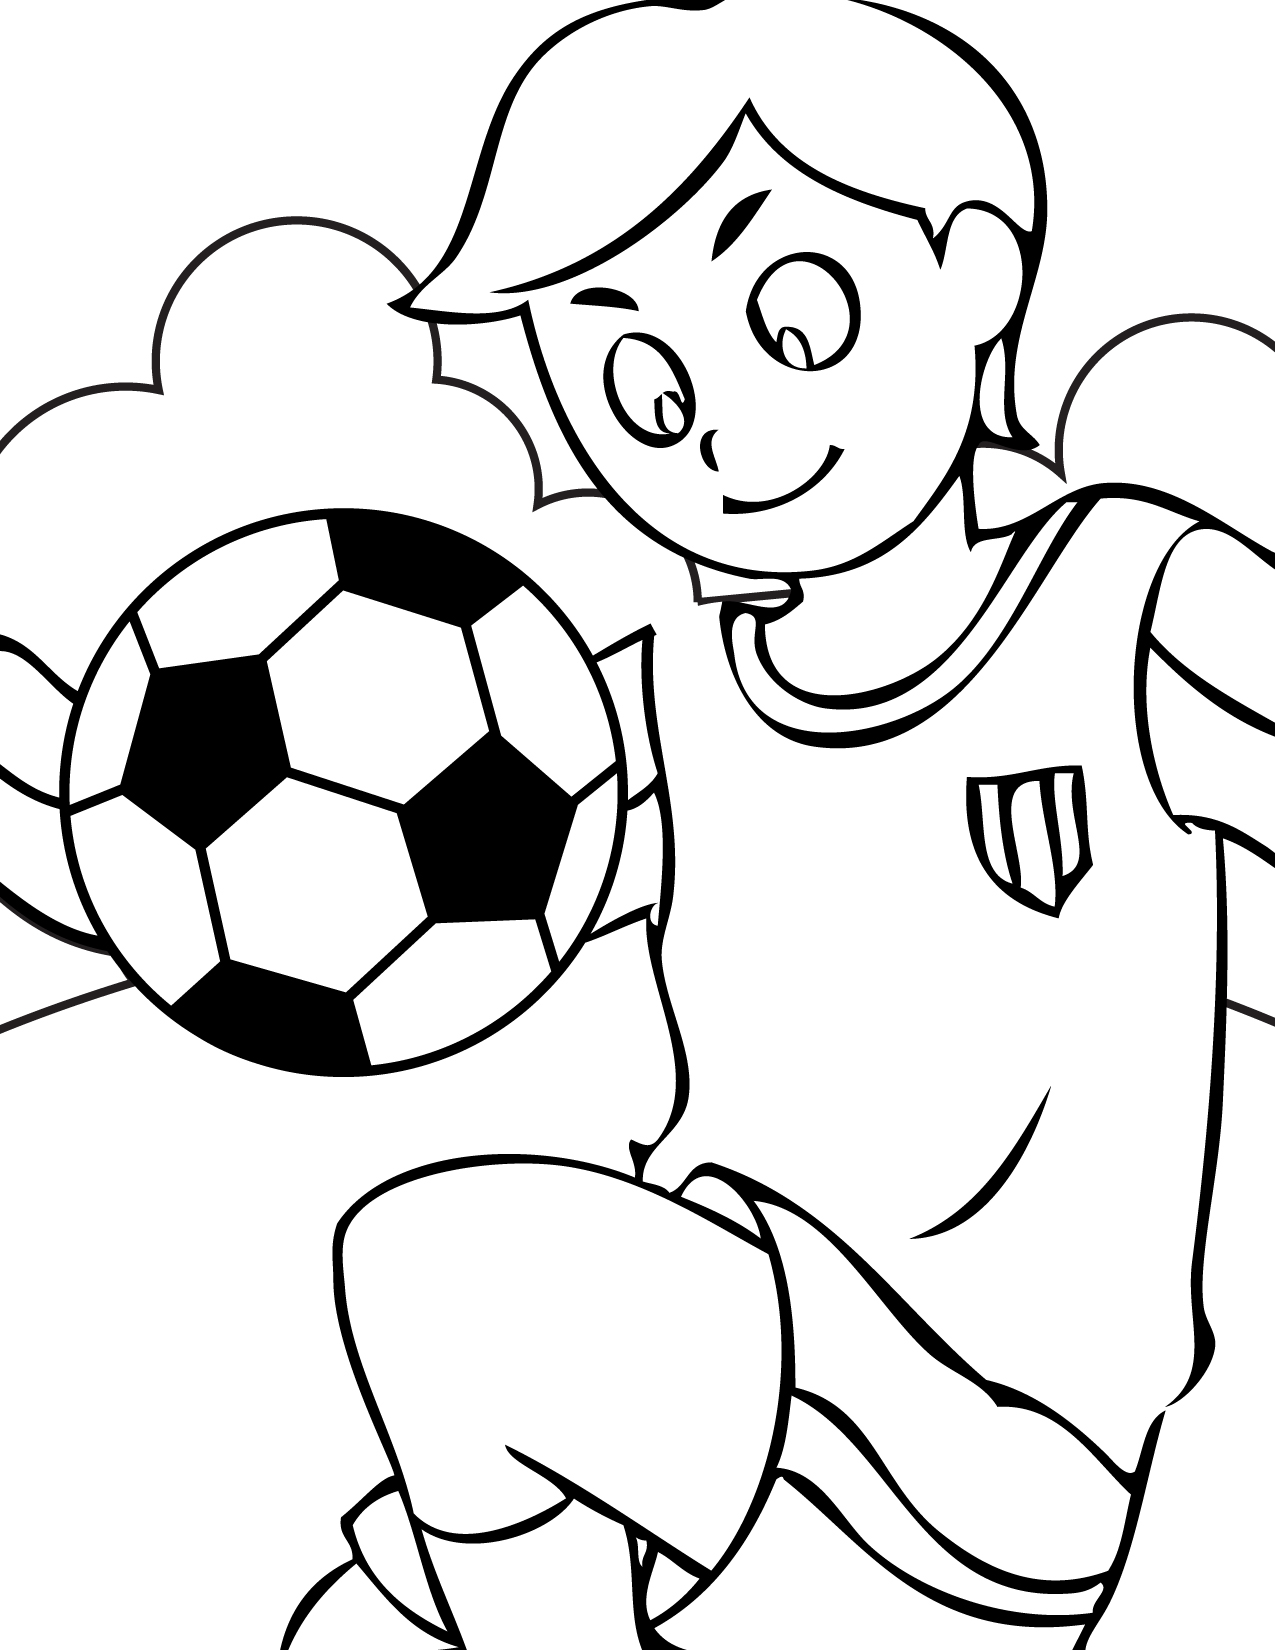 Sport pictures to color